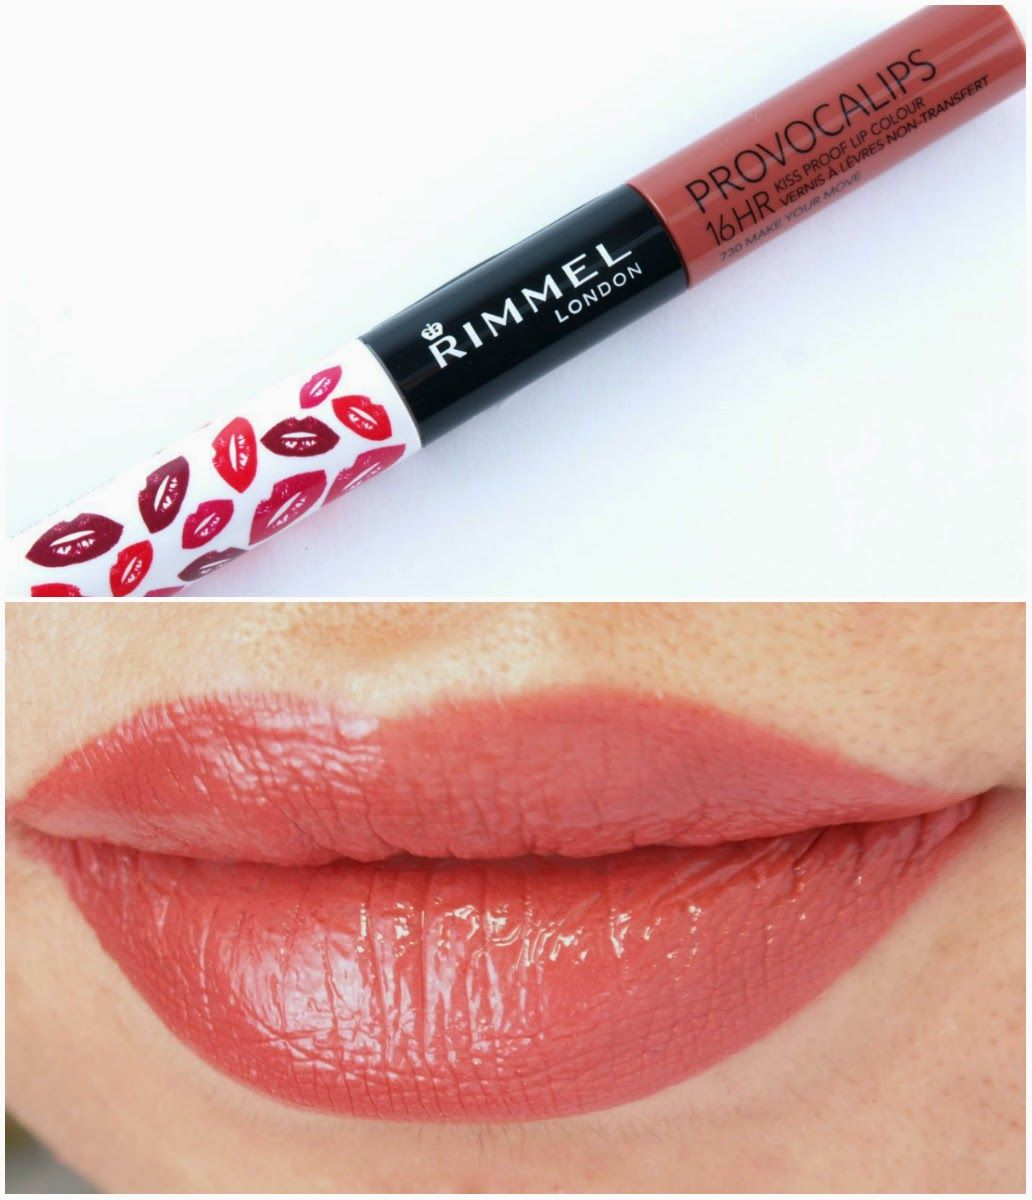 Rimmel Provocalips 16hr Kiss Proof Lip Color Review And Swatches Rimmel Provocalips Drugstore Liquid Lipstick Best Drugstore Liquid Lipstick